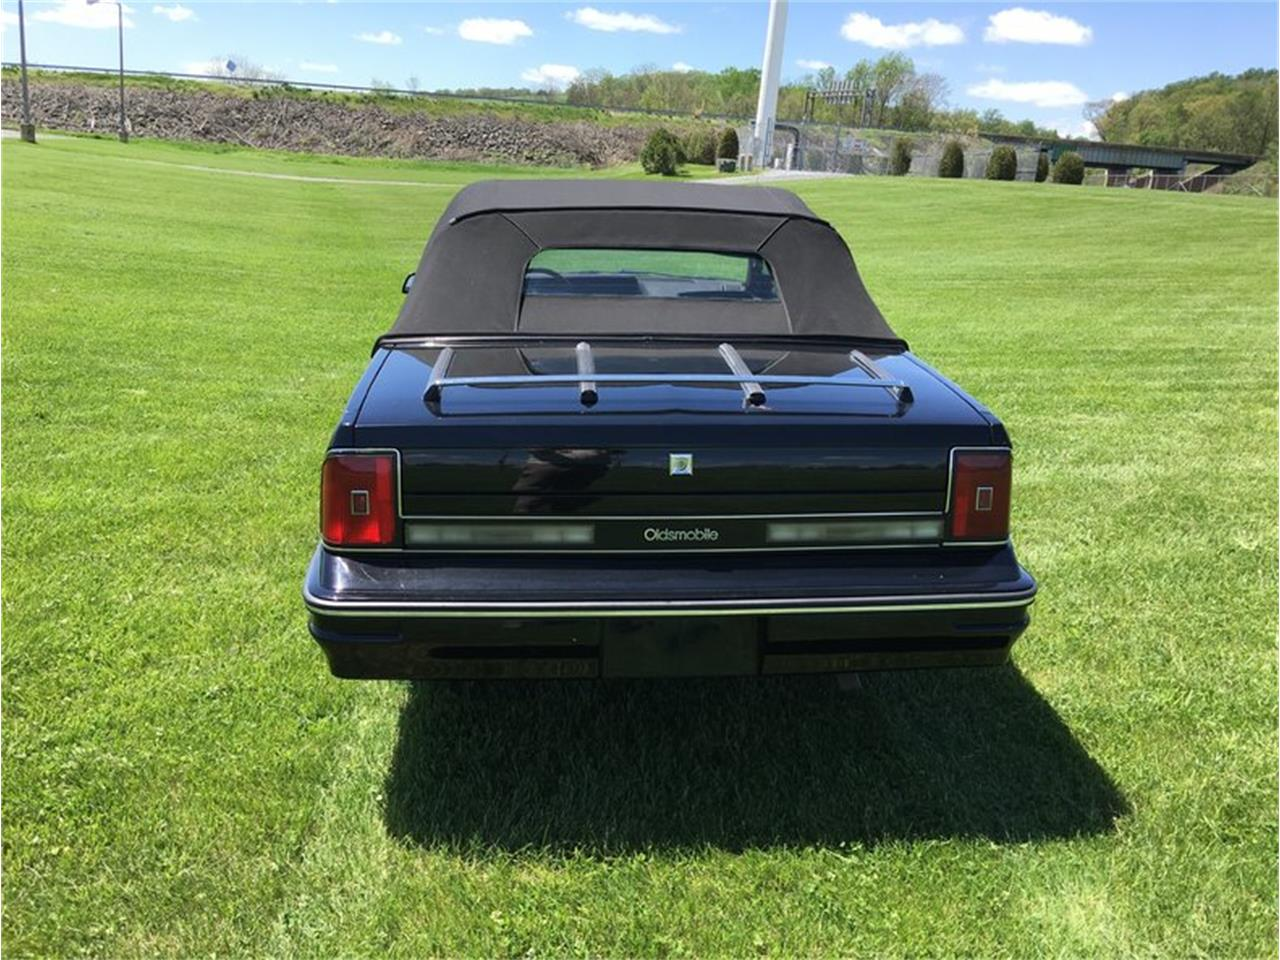 Large Picture of '85 Cutless ciera conv - LDF1